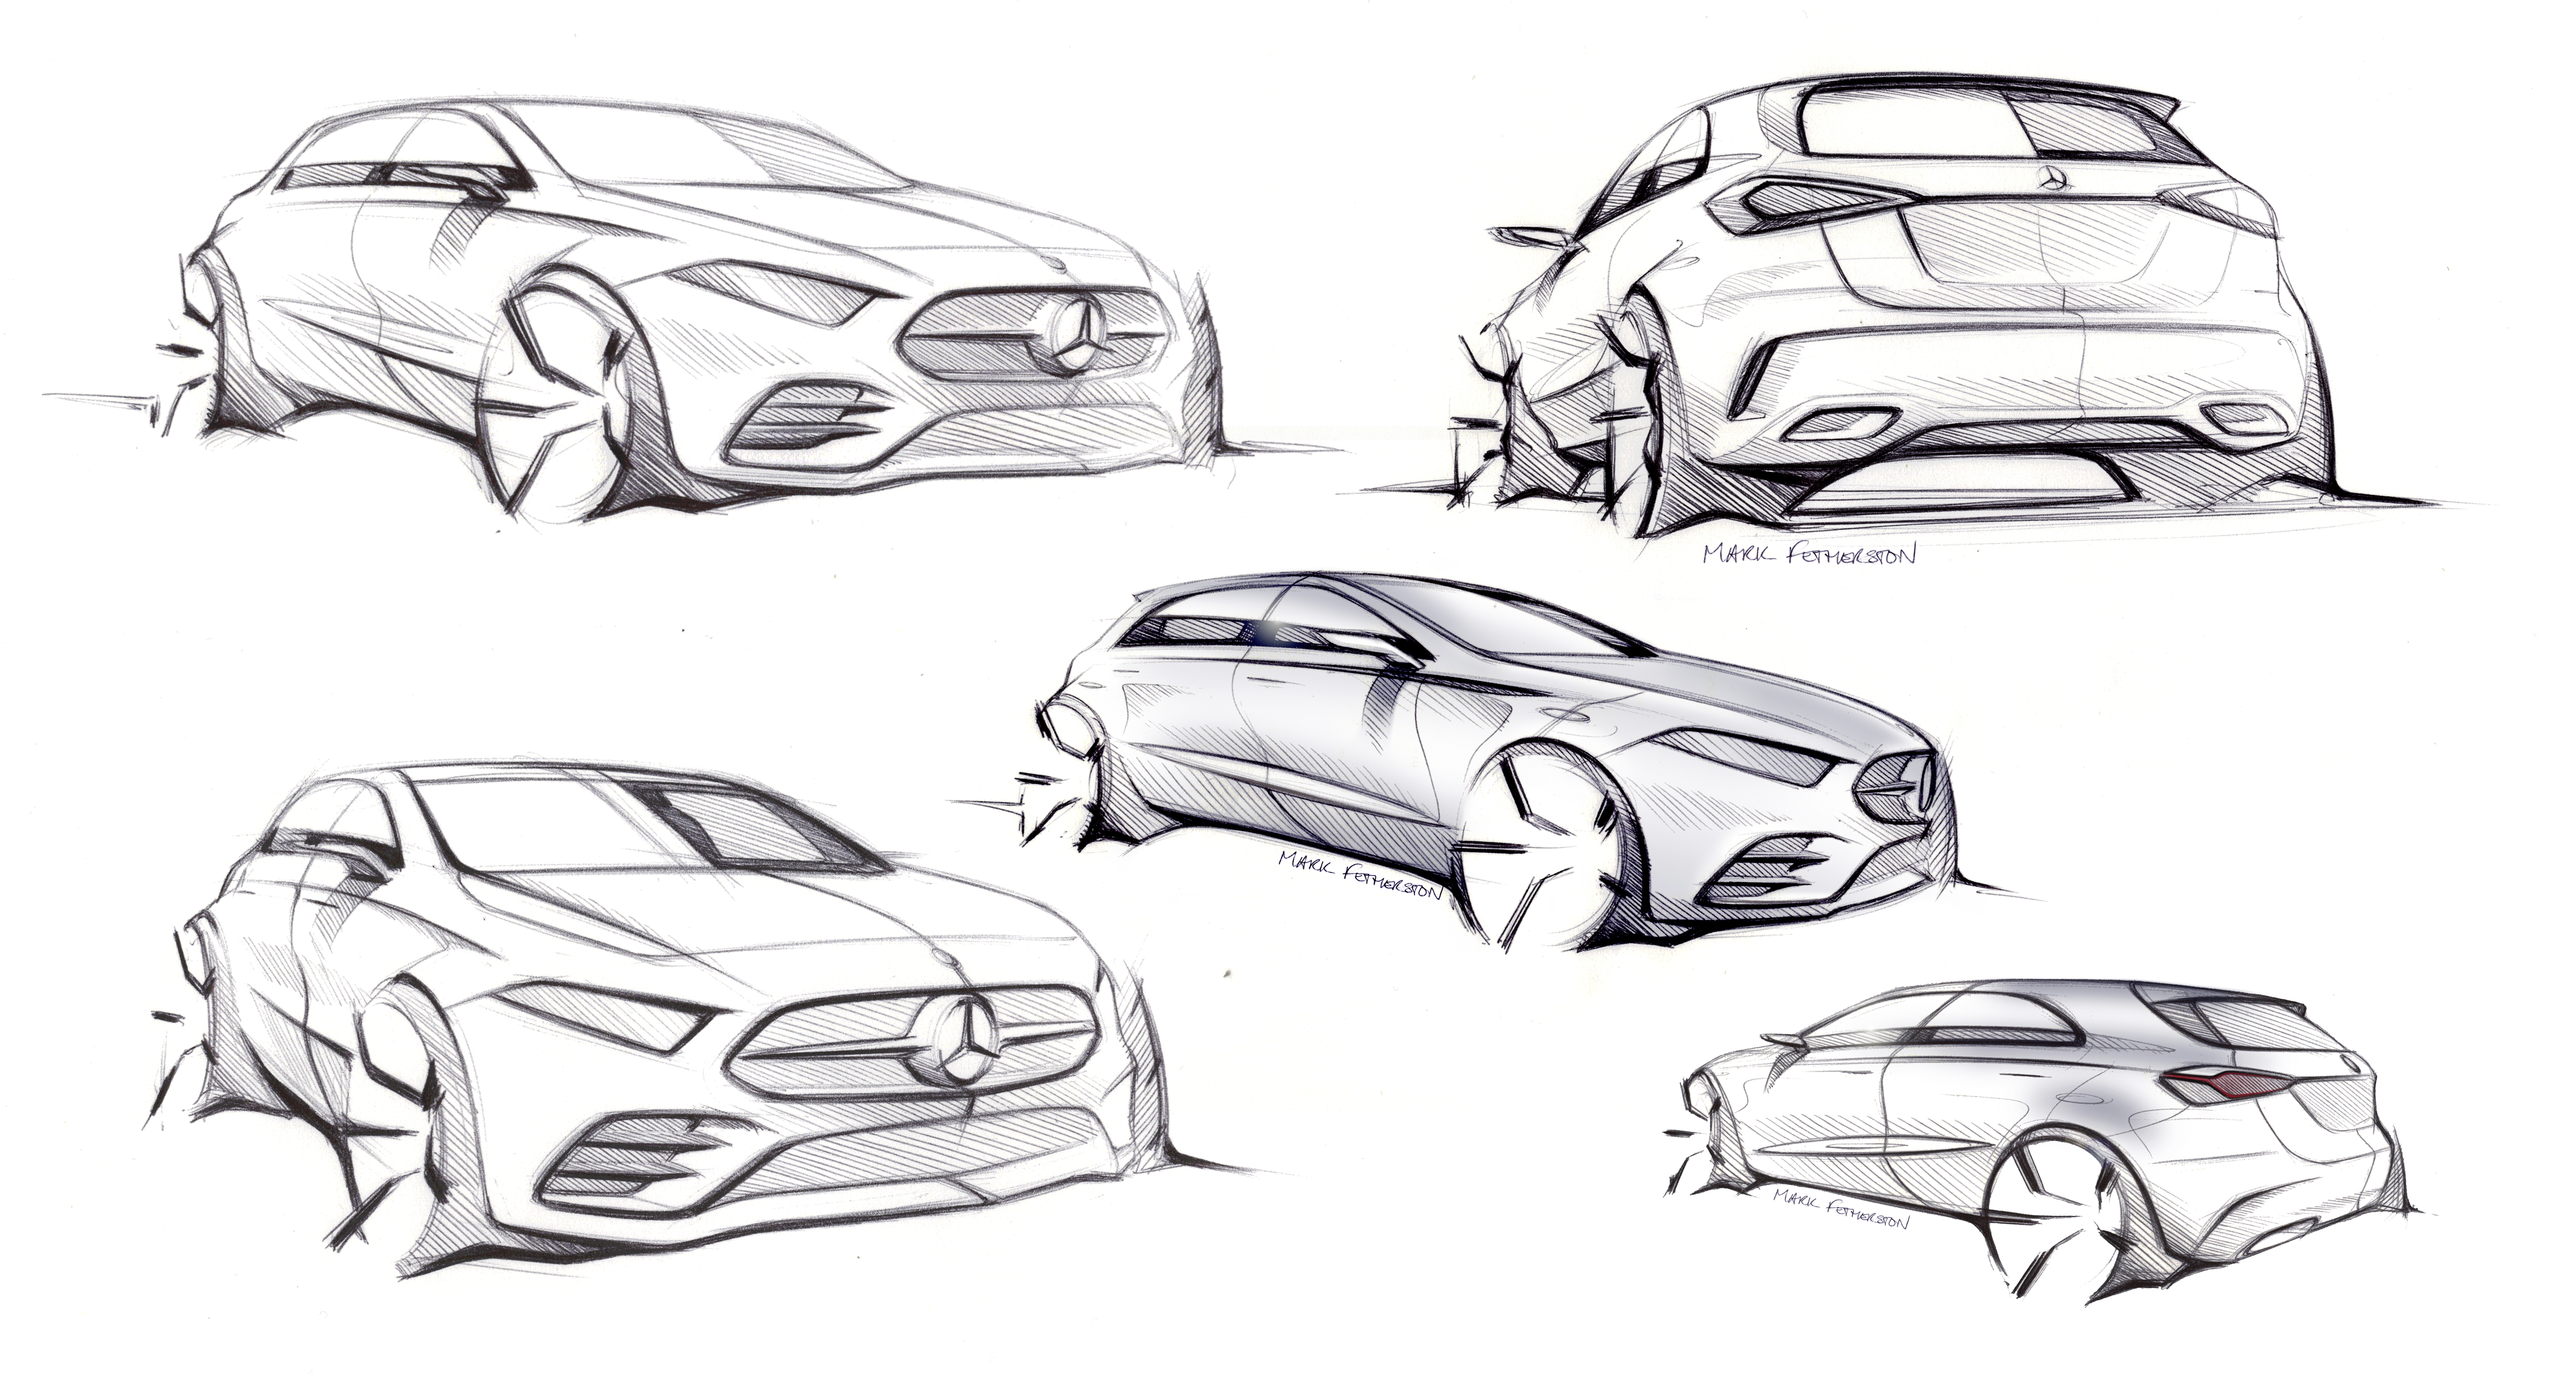 2018 Mercedes-Benz A-Class unveiled, Geneva debut Image #774468